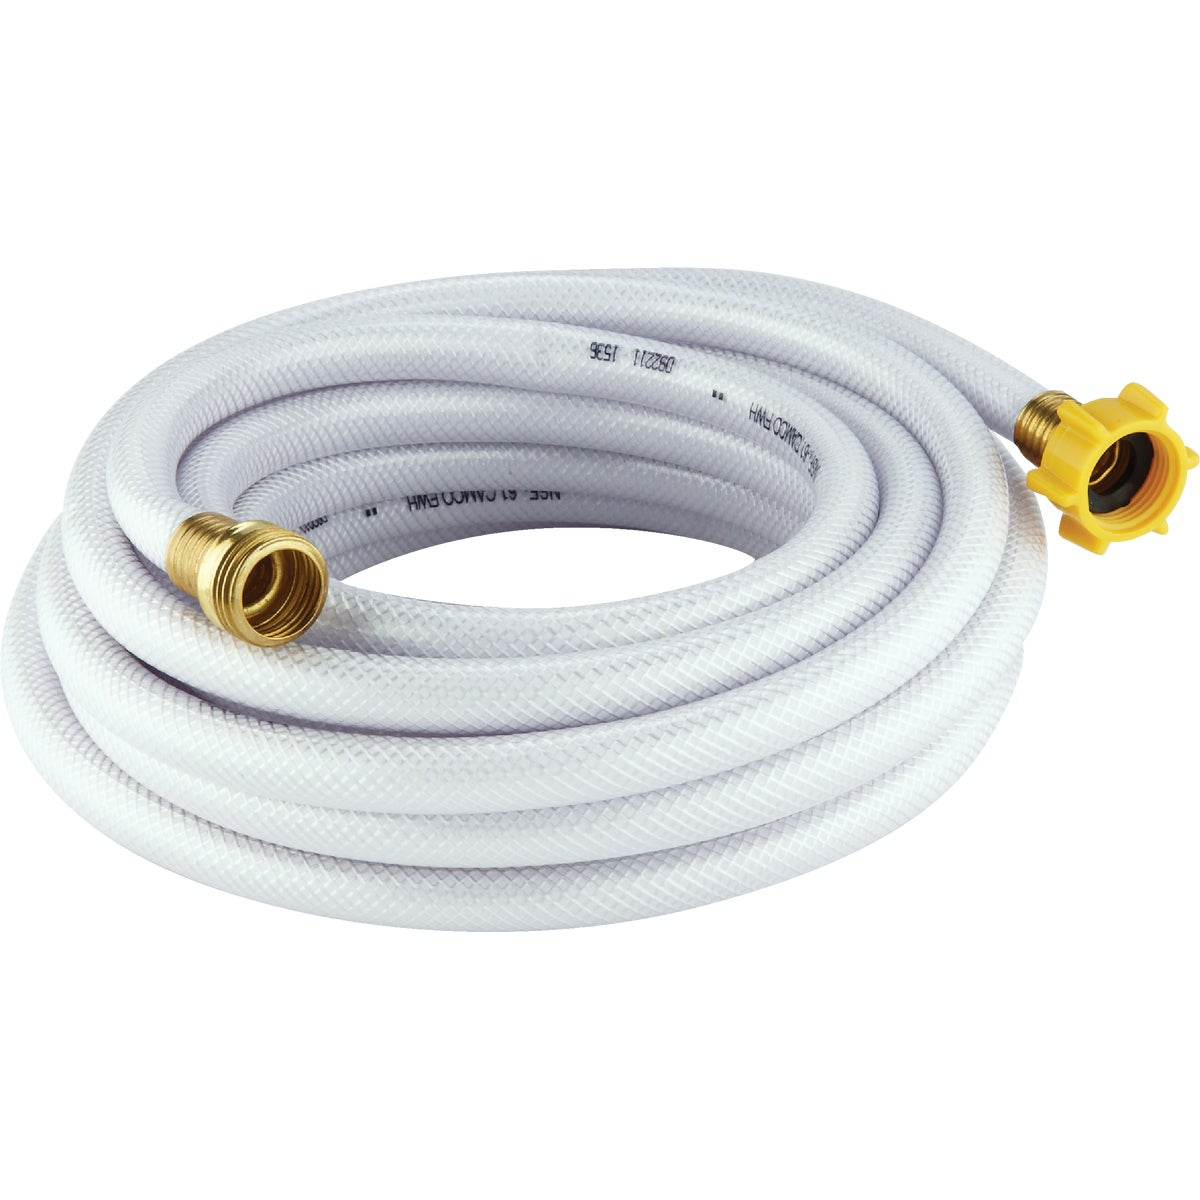 25' FRESH WATER HOSE